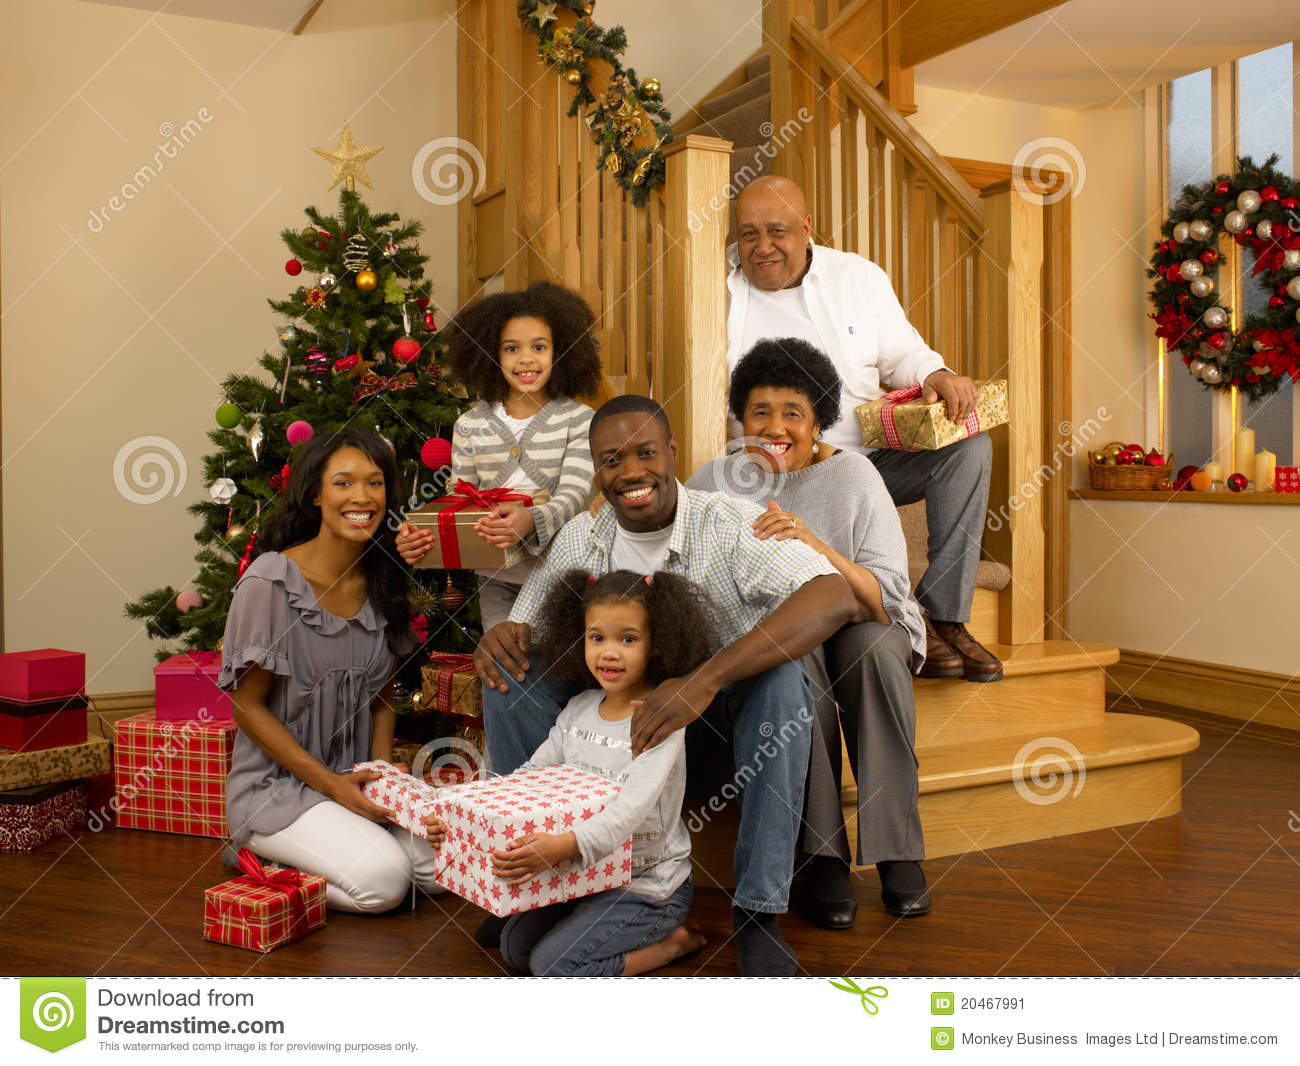 Mixed Race Family With Christmas Tree And Gifts Stock